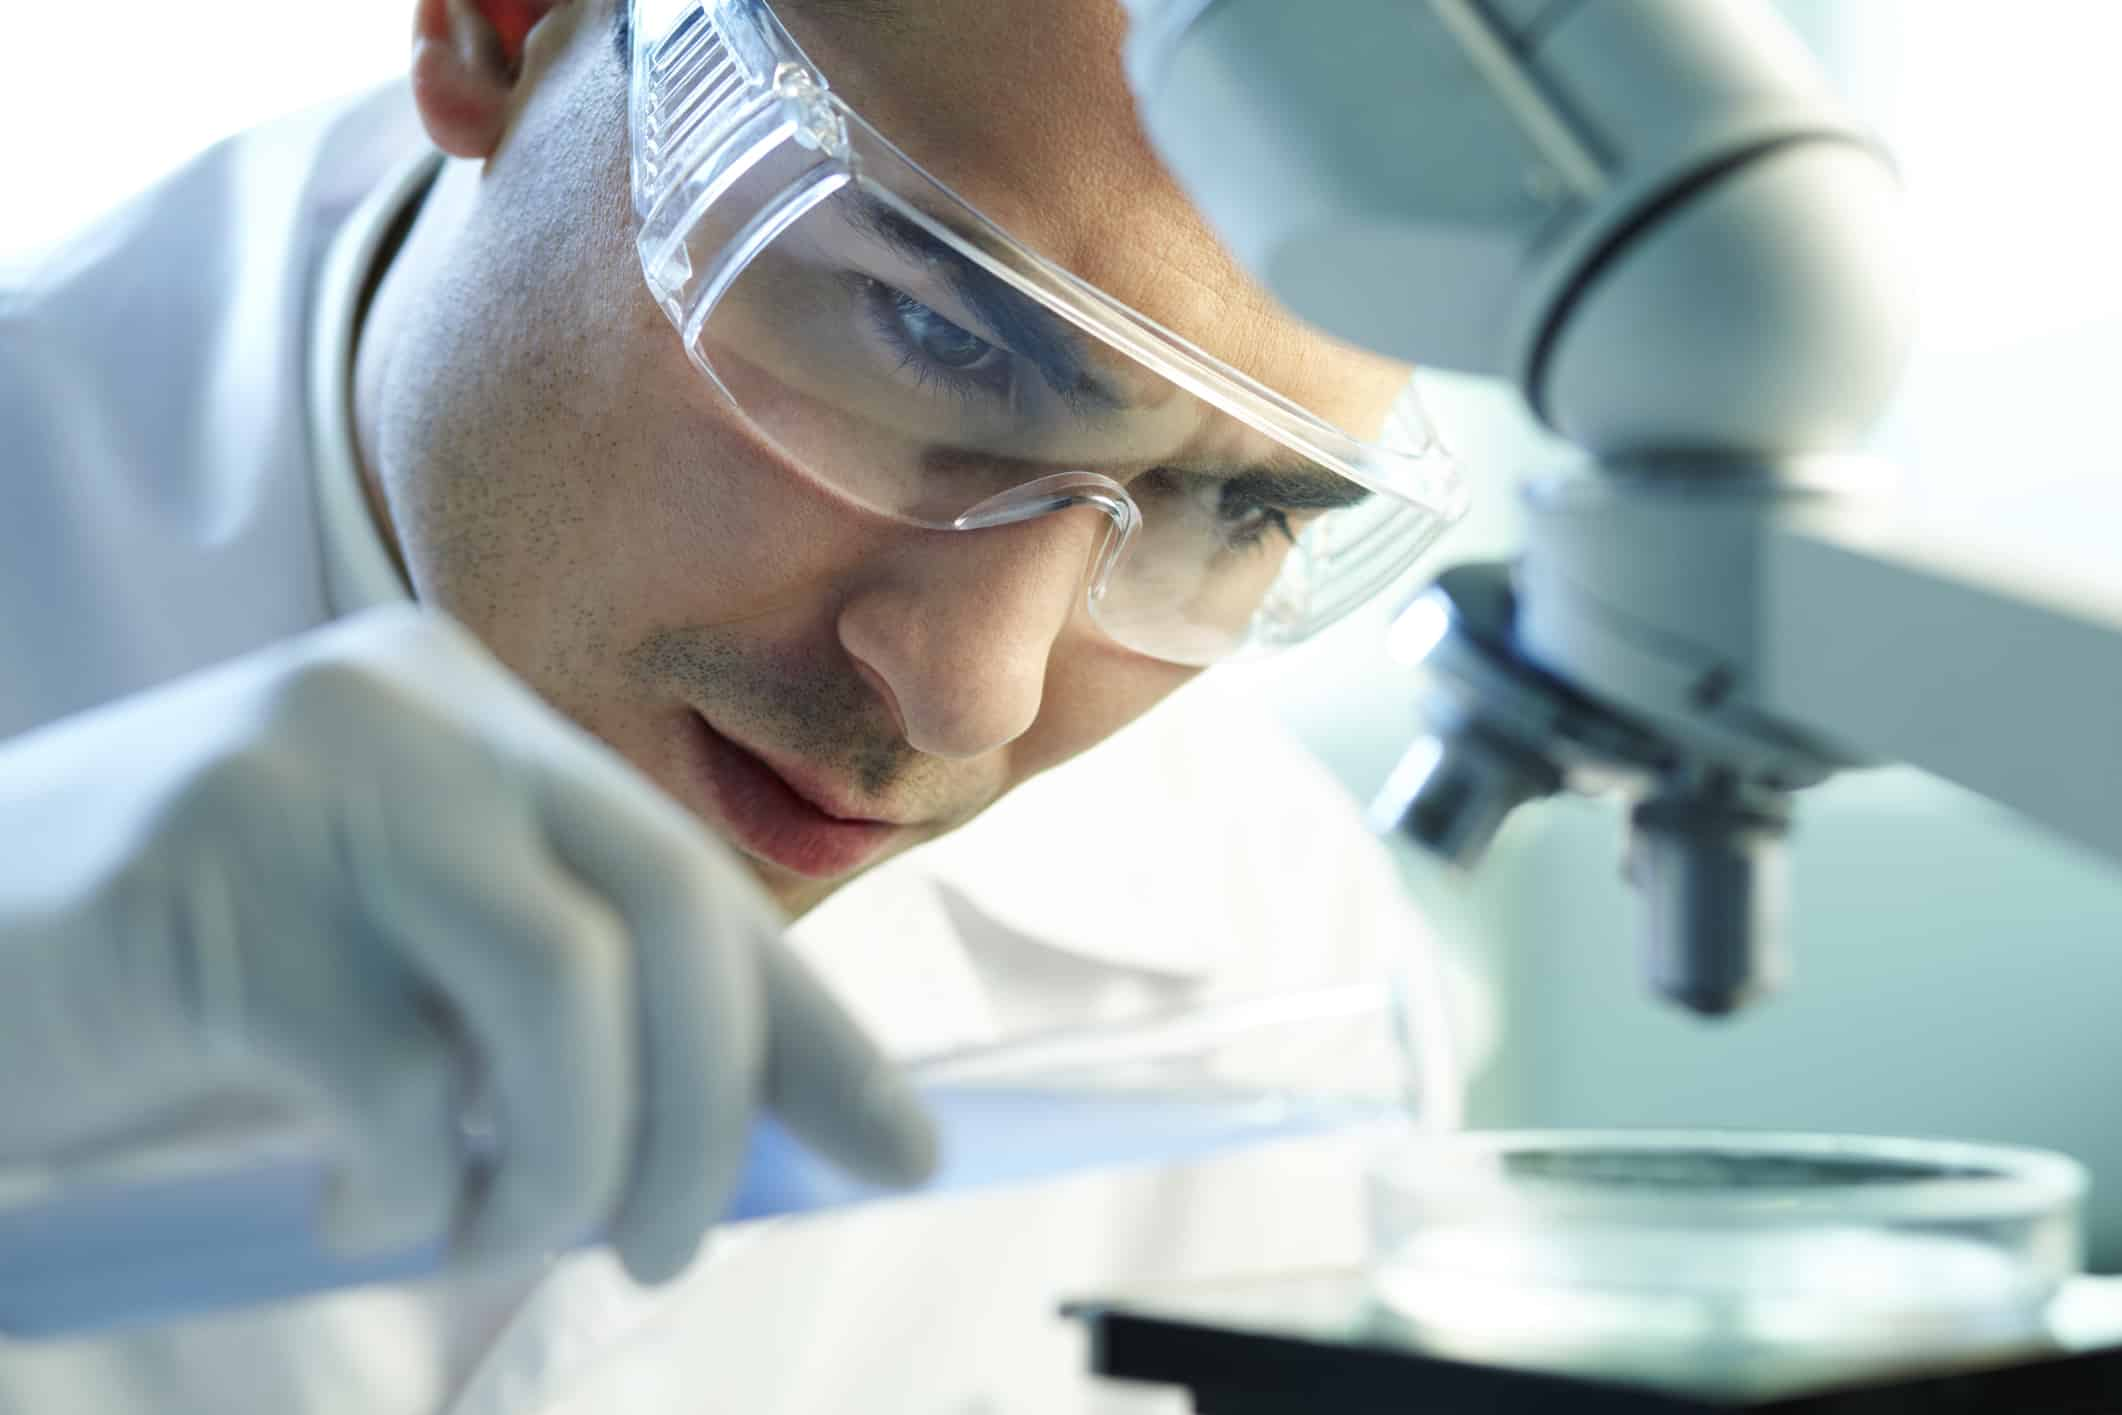 Research Scientist Chemistry Position @ PI Industries